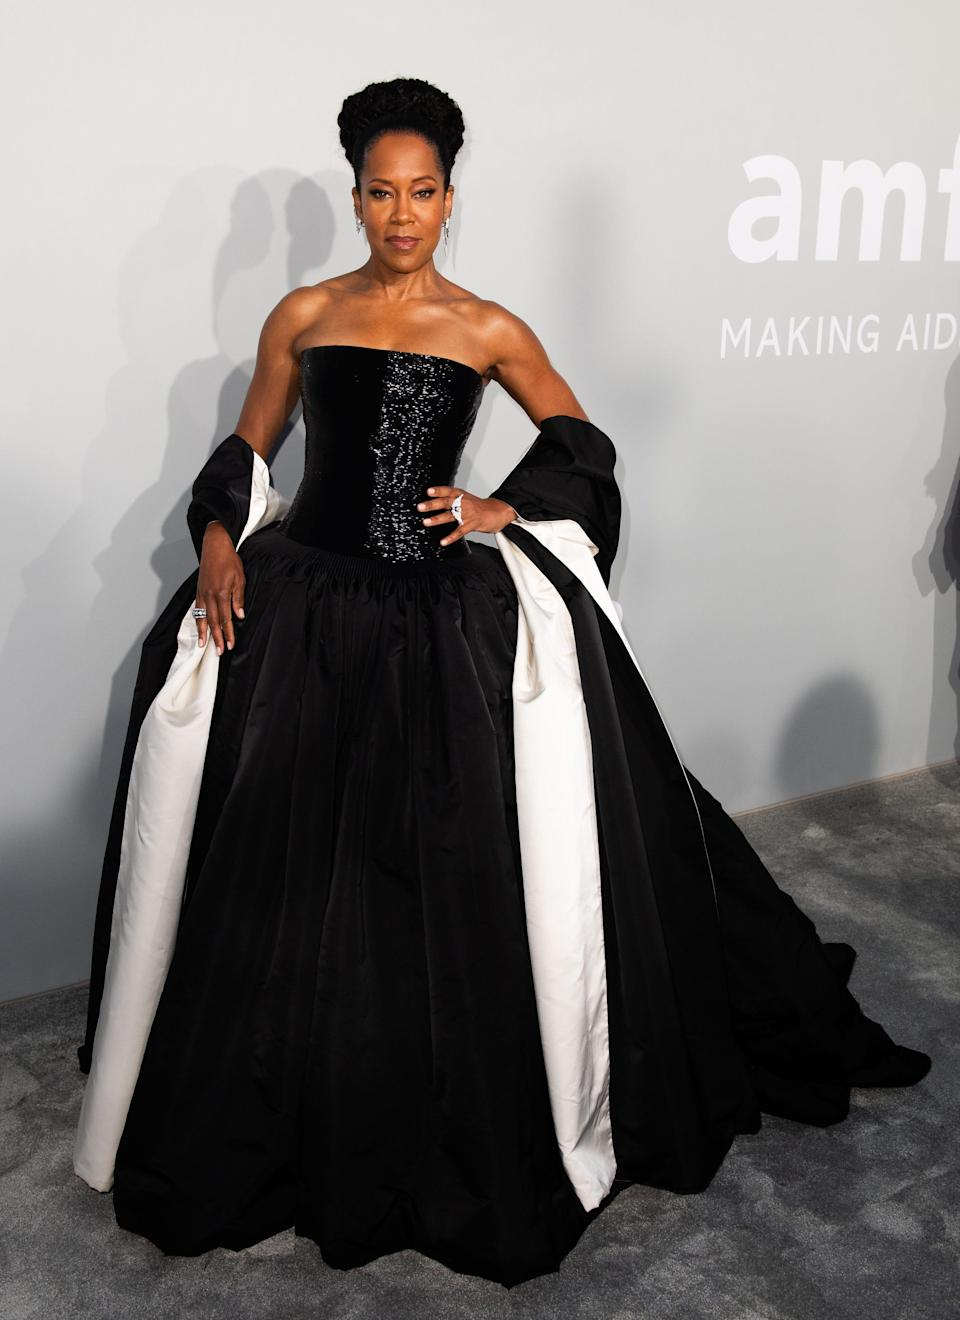 Regina King at the Cannes Gala